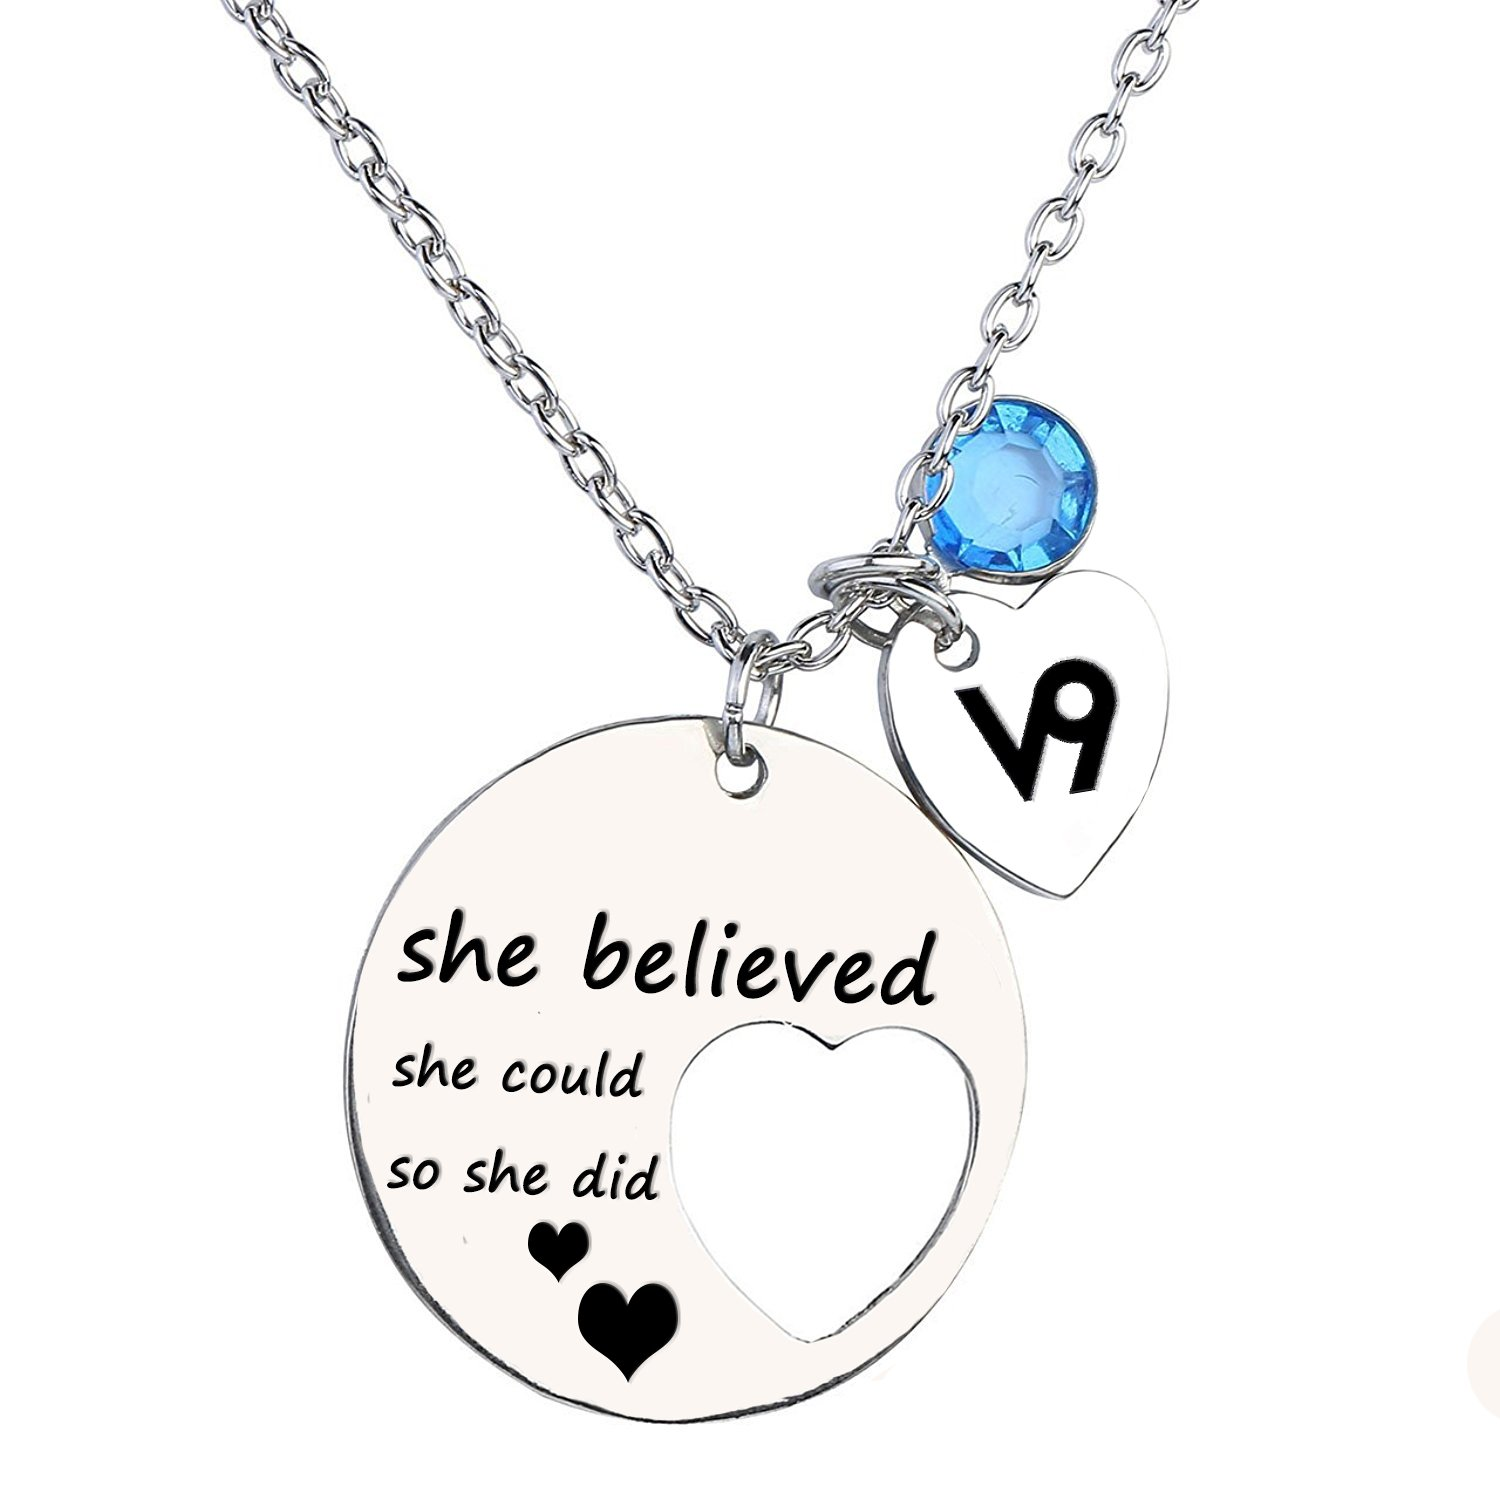 """She believed she could so she did"" Personalized Cutout Stainless Steel Necklace with Zodiac Signs and Birthstone Lywjyb Birdgot ZN-01"